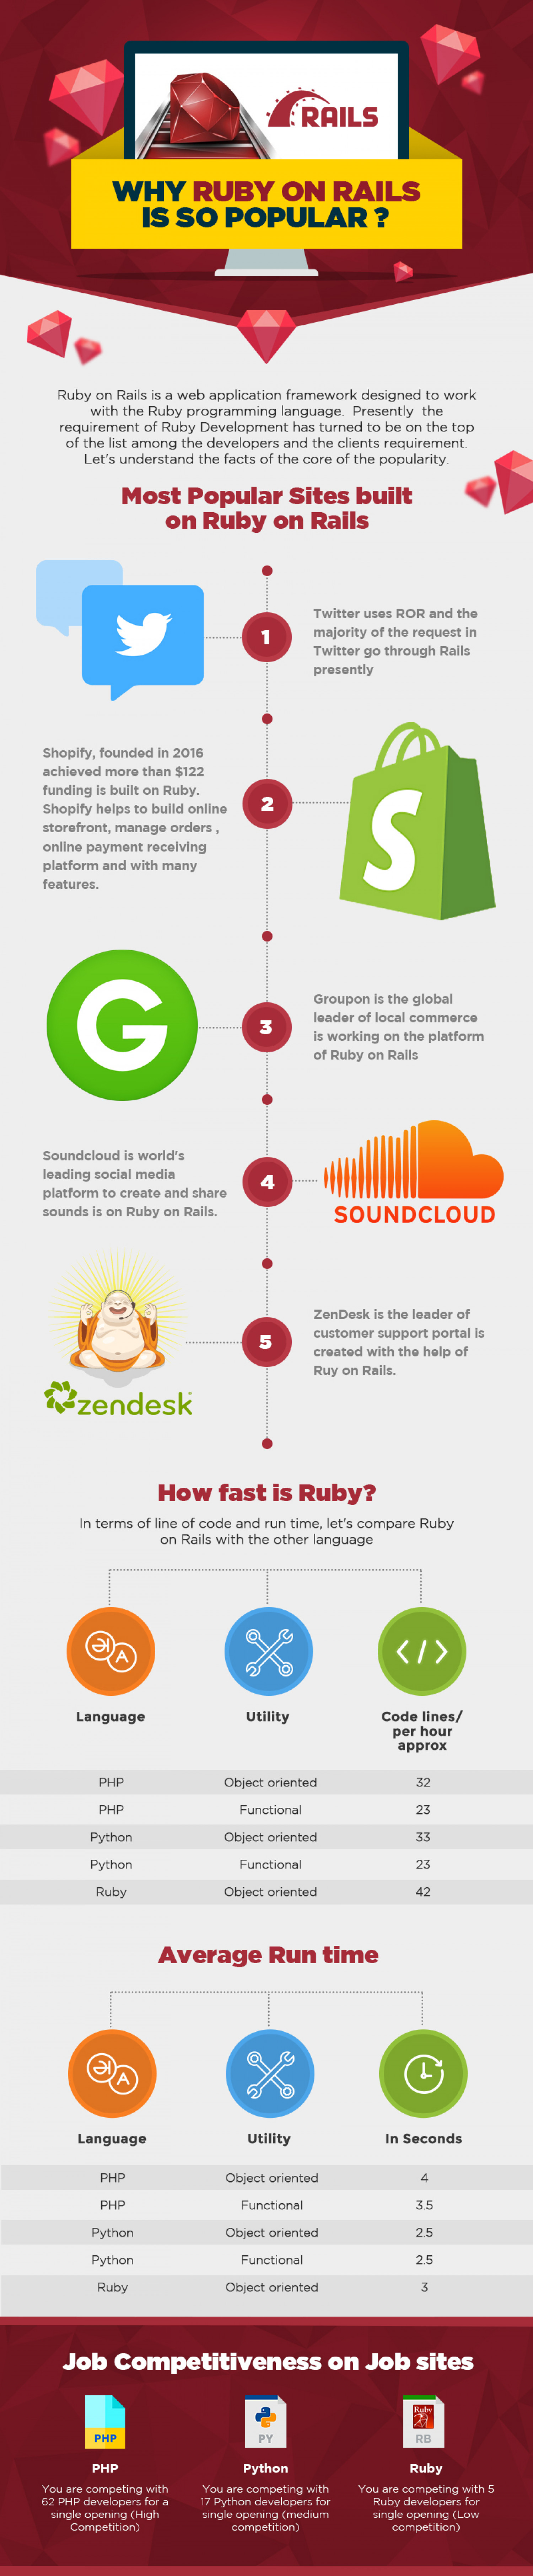 Why Ruby on Rails is so Popular? Infographic